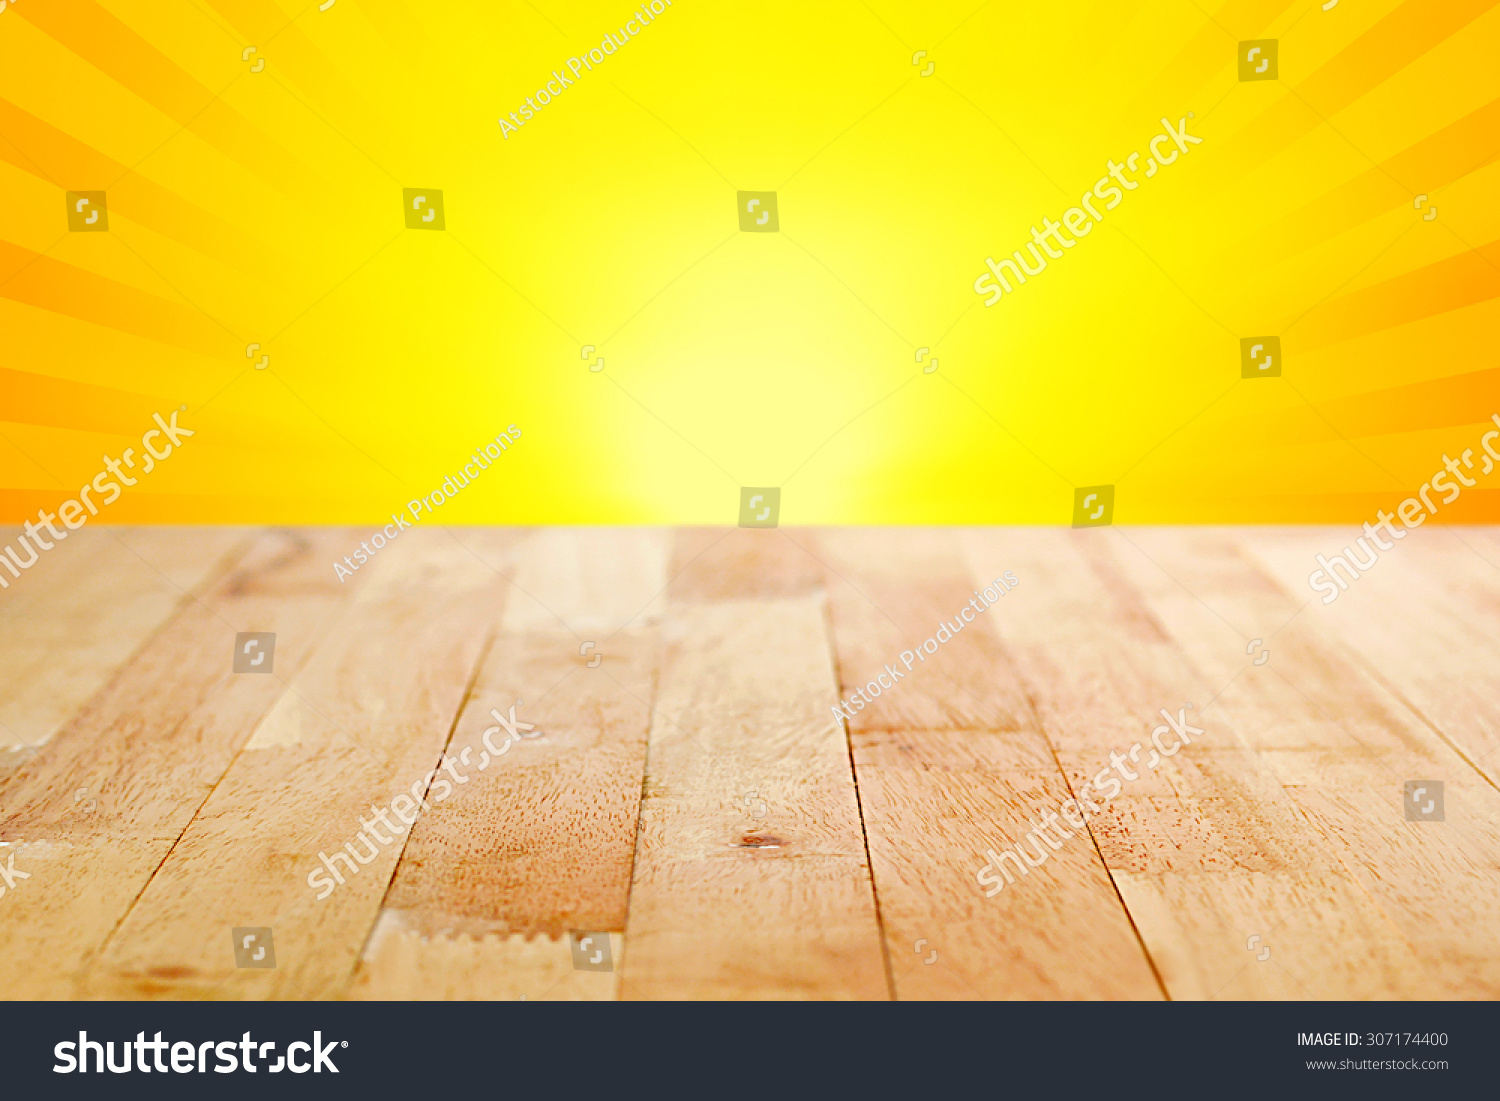 Wood Table Top Empty Wood Table Top On Blur Stock Photo  : stock photo wood table top on yellow and orange radiate sunburst background can be used for display or 307174400 from alkotshnews.com size 1500 x 1101 jpeg 463kB